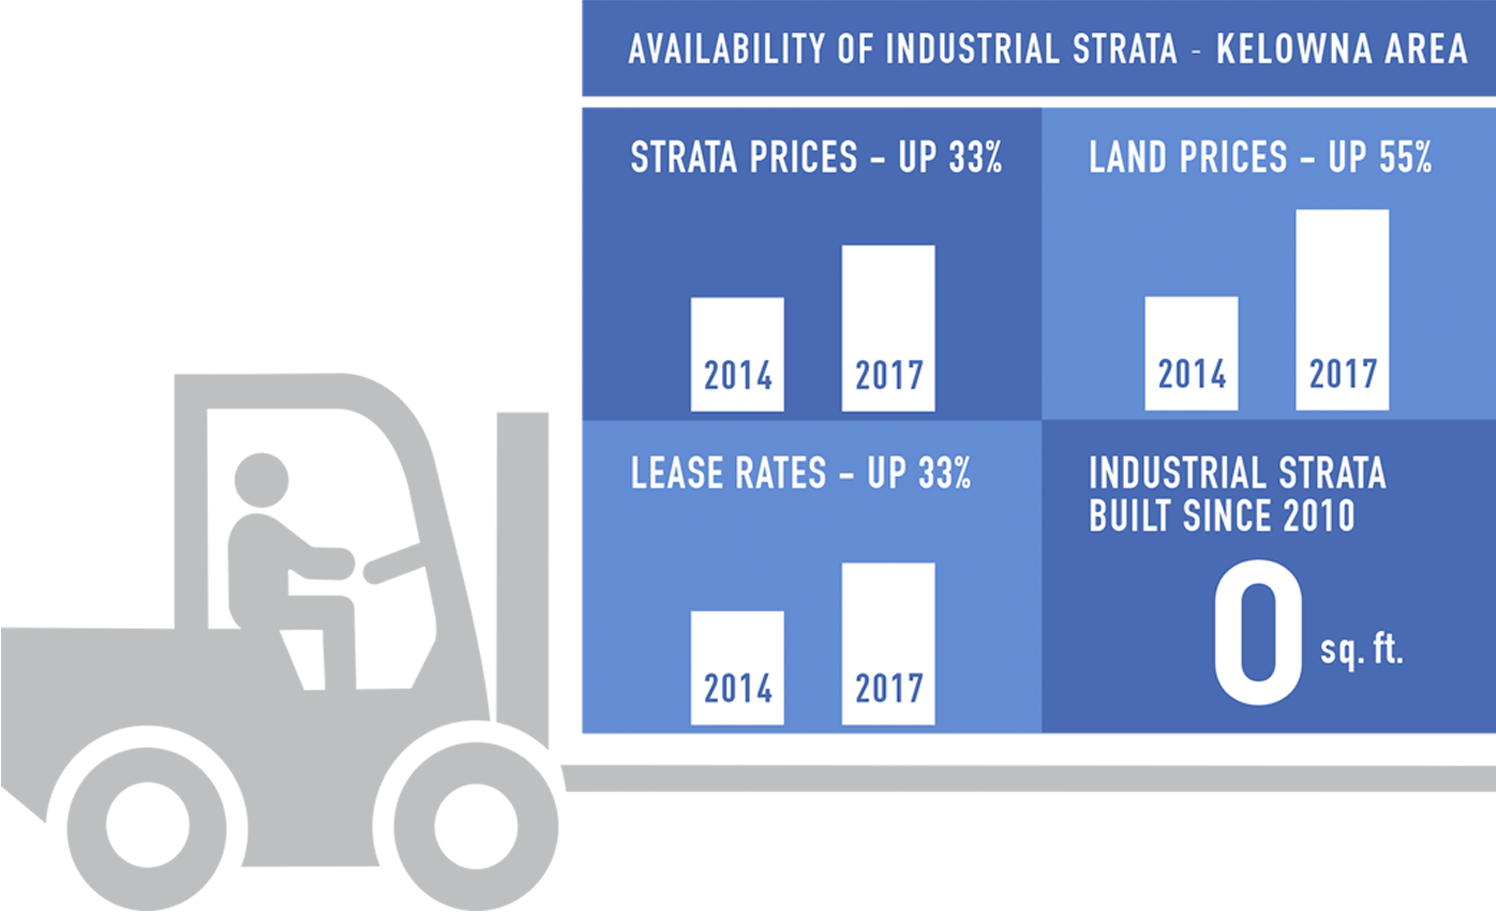 Availability of Industrial Strata - Kelowna Area